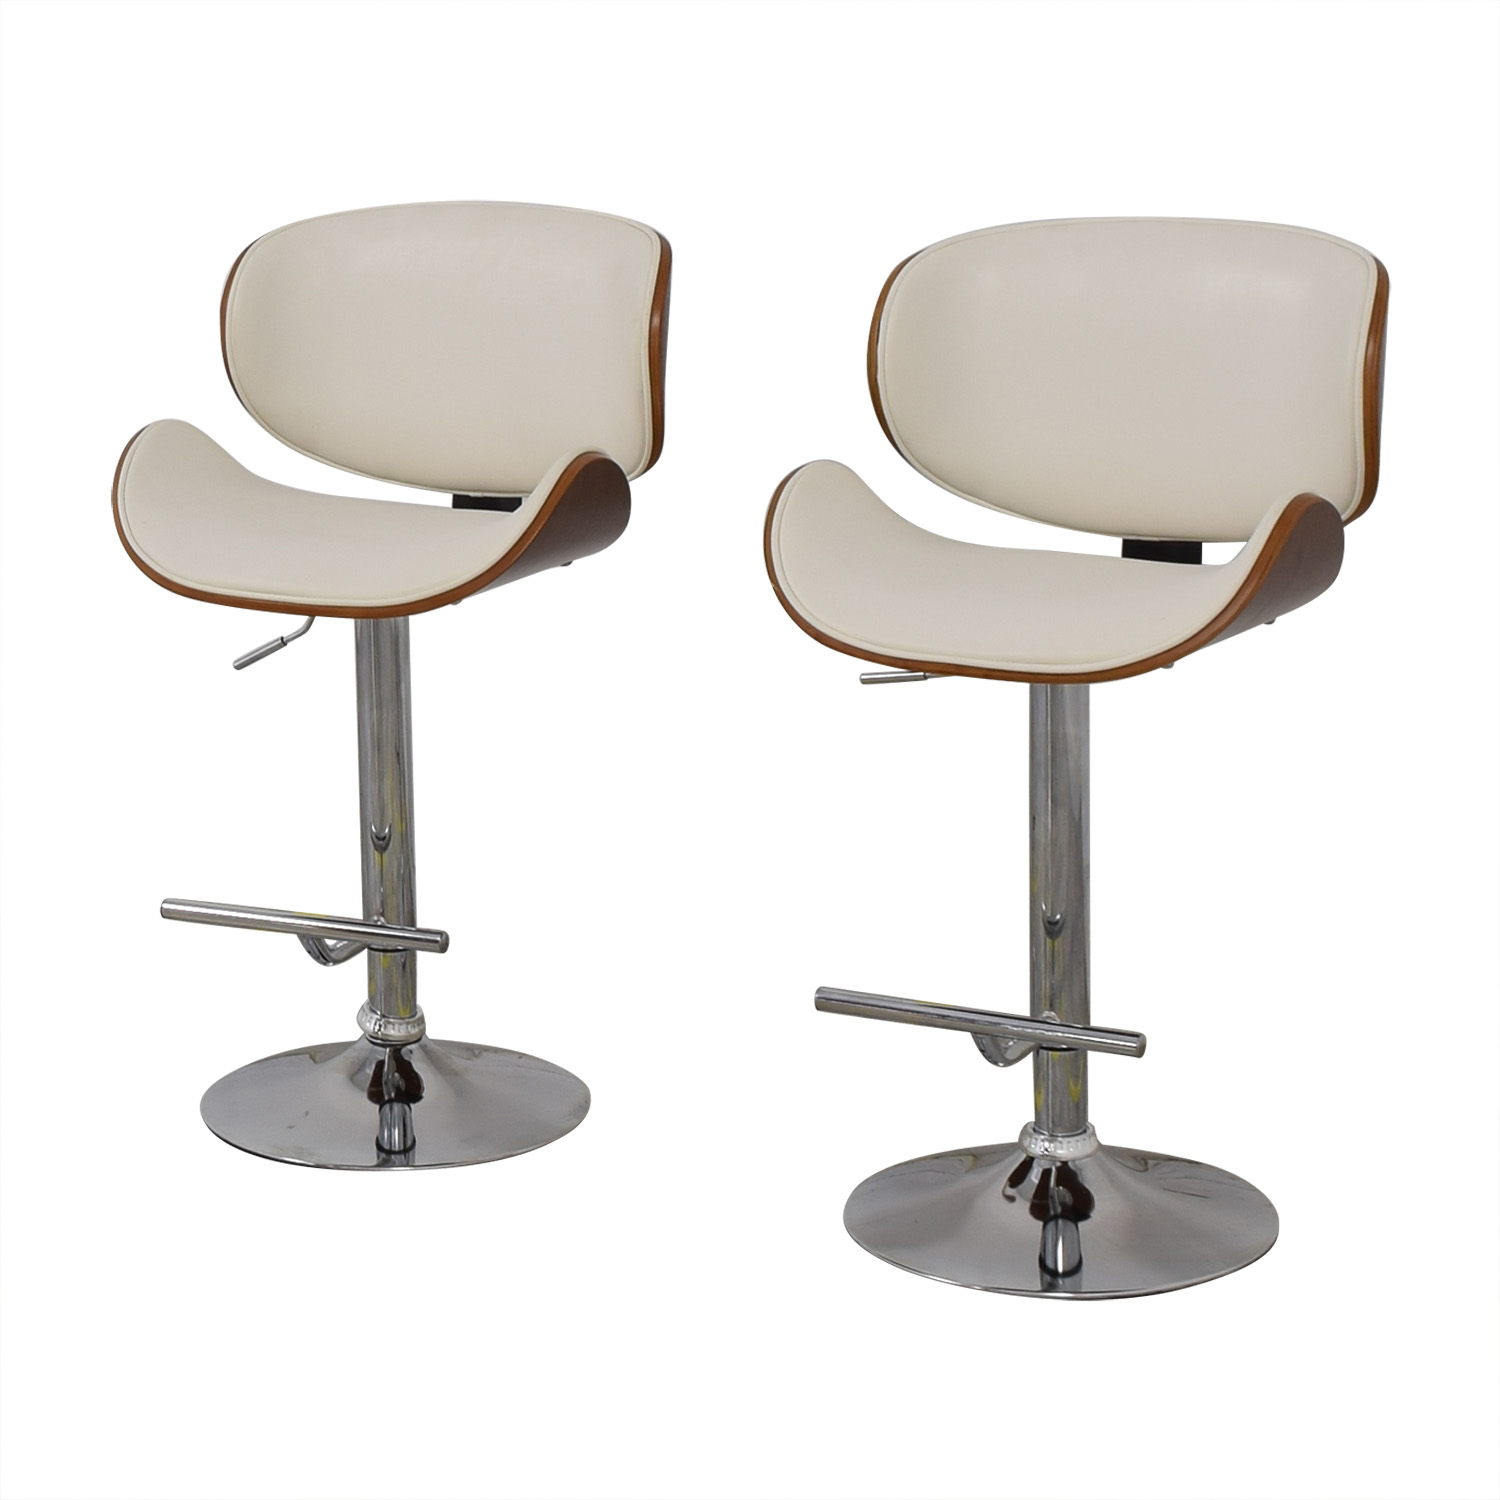 Raymour & Flanigan Raymour & Flanigan Swivel Bar Stools price